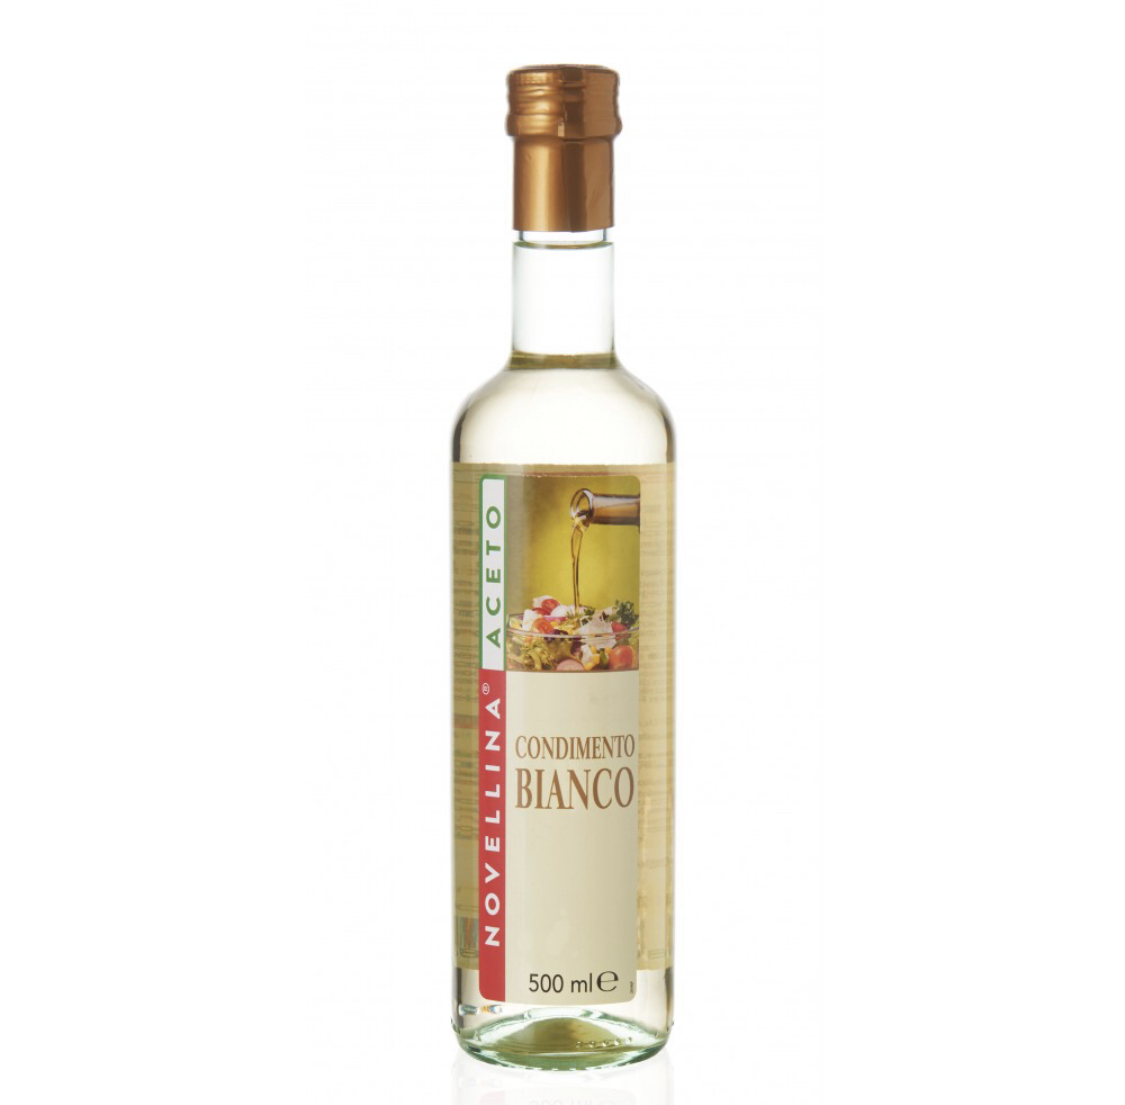 Aceto Condimento Bianco – white wine vinegar